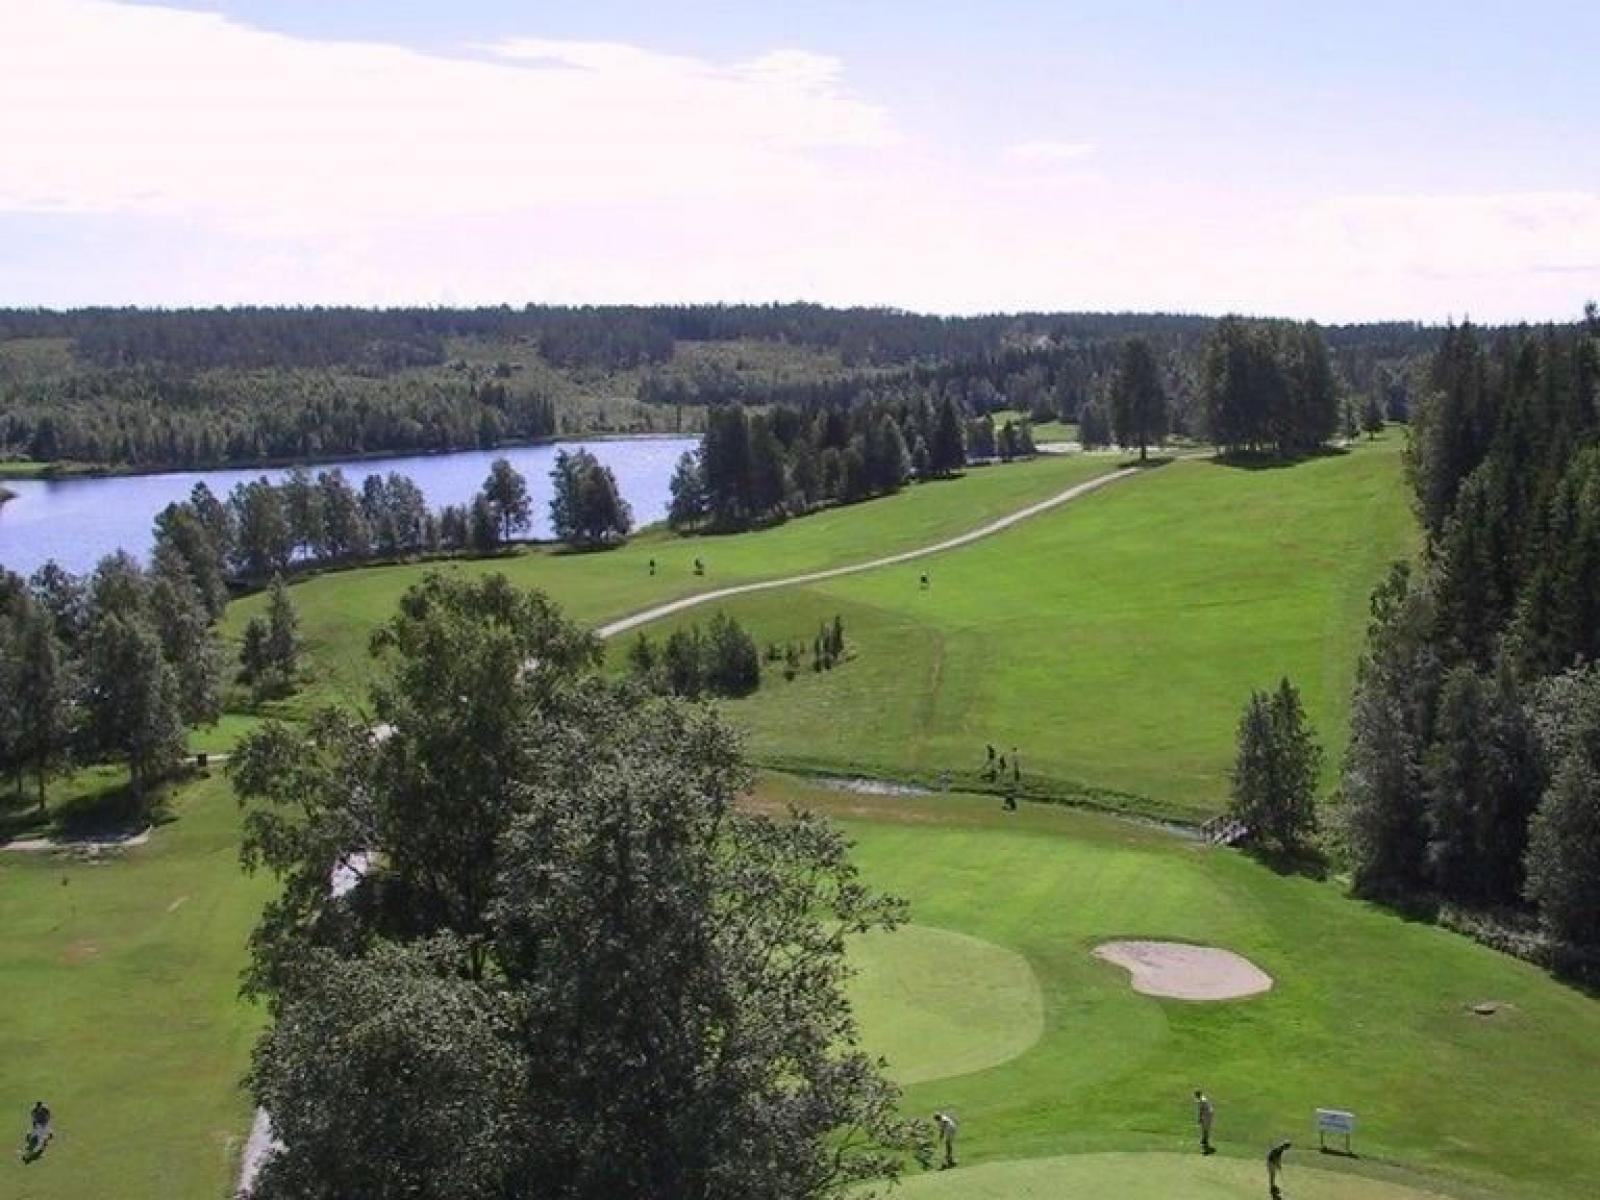 Puttom golfbana, hål 18